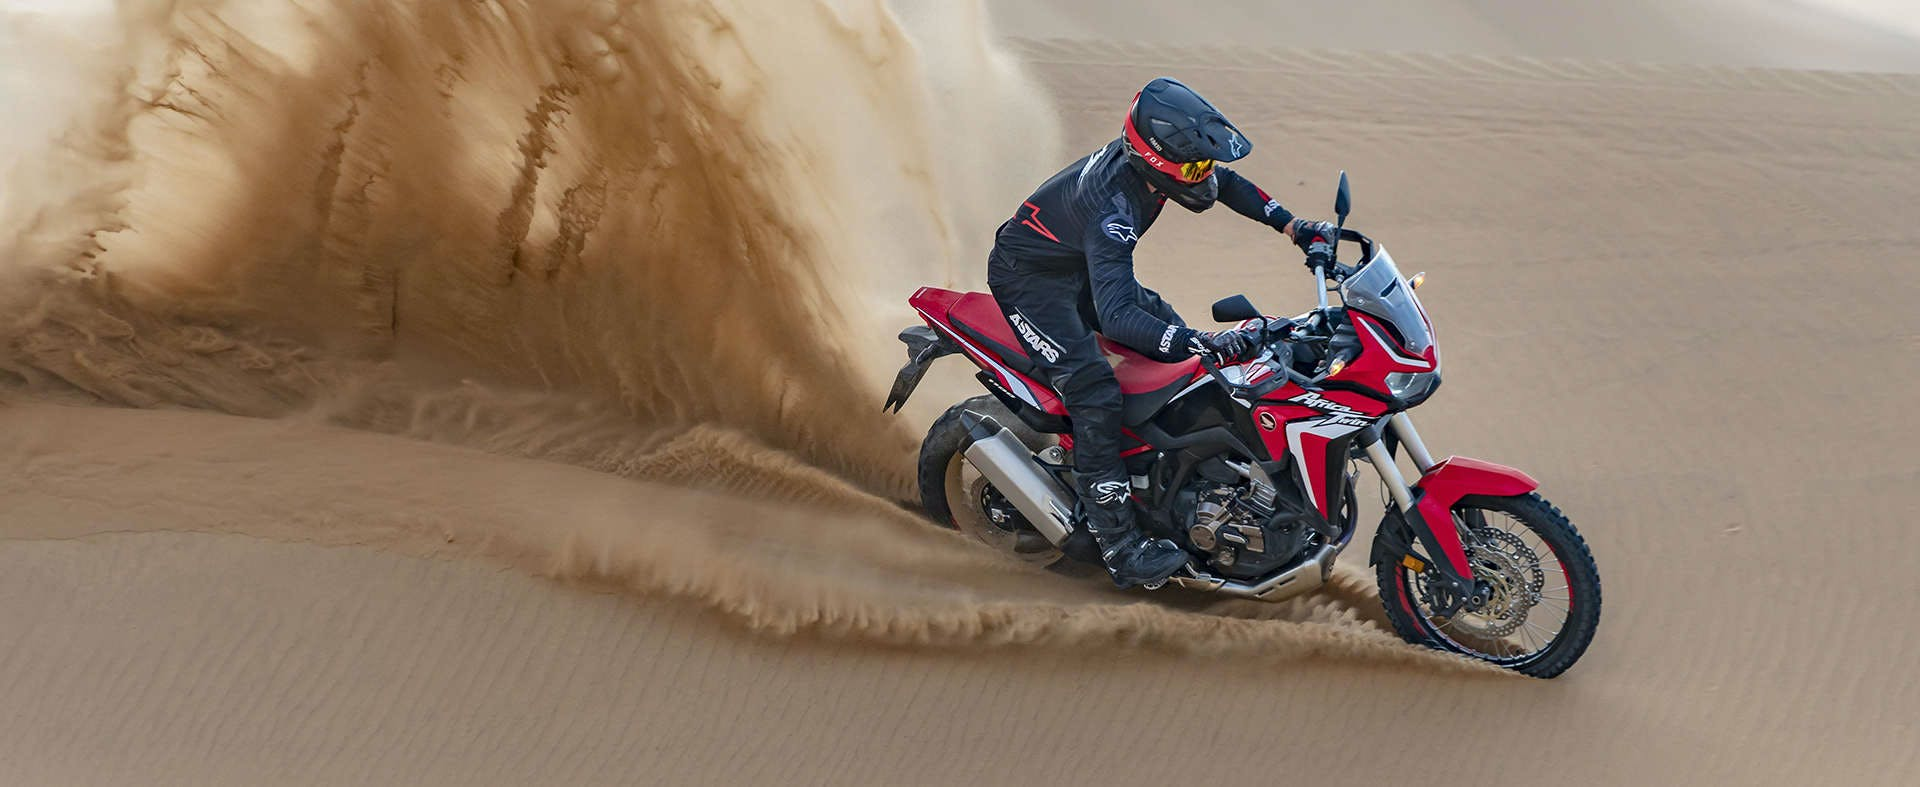 Honda Africa Twin 1100 on sand track